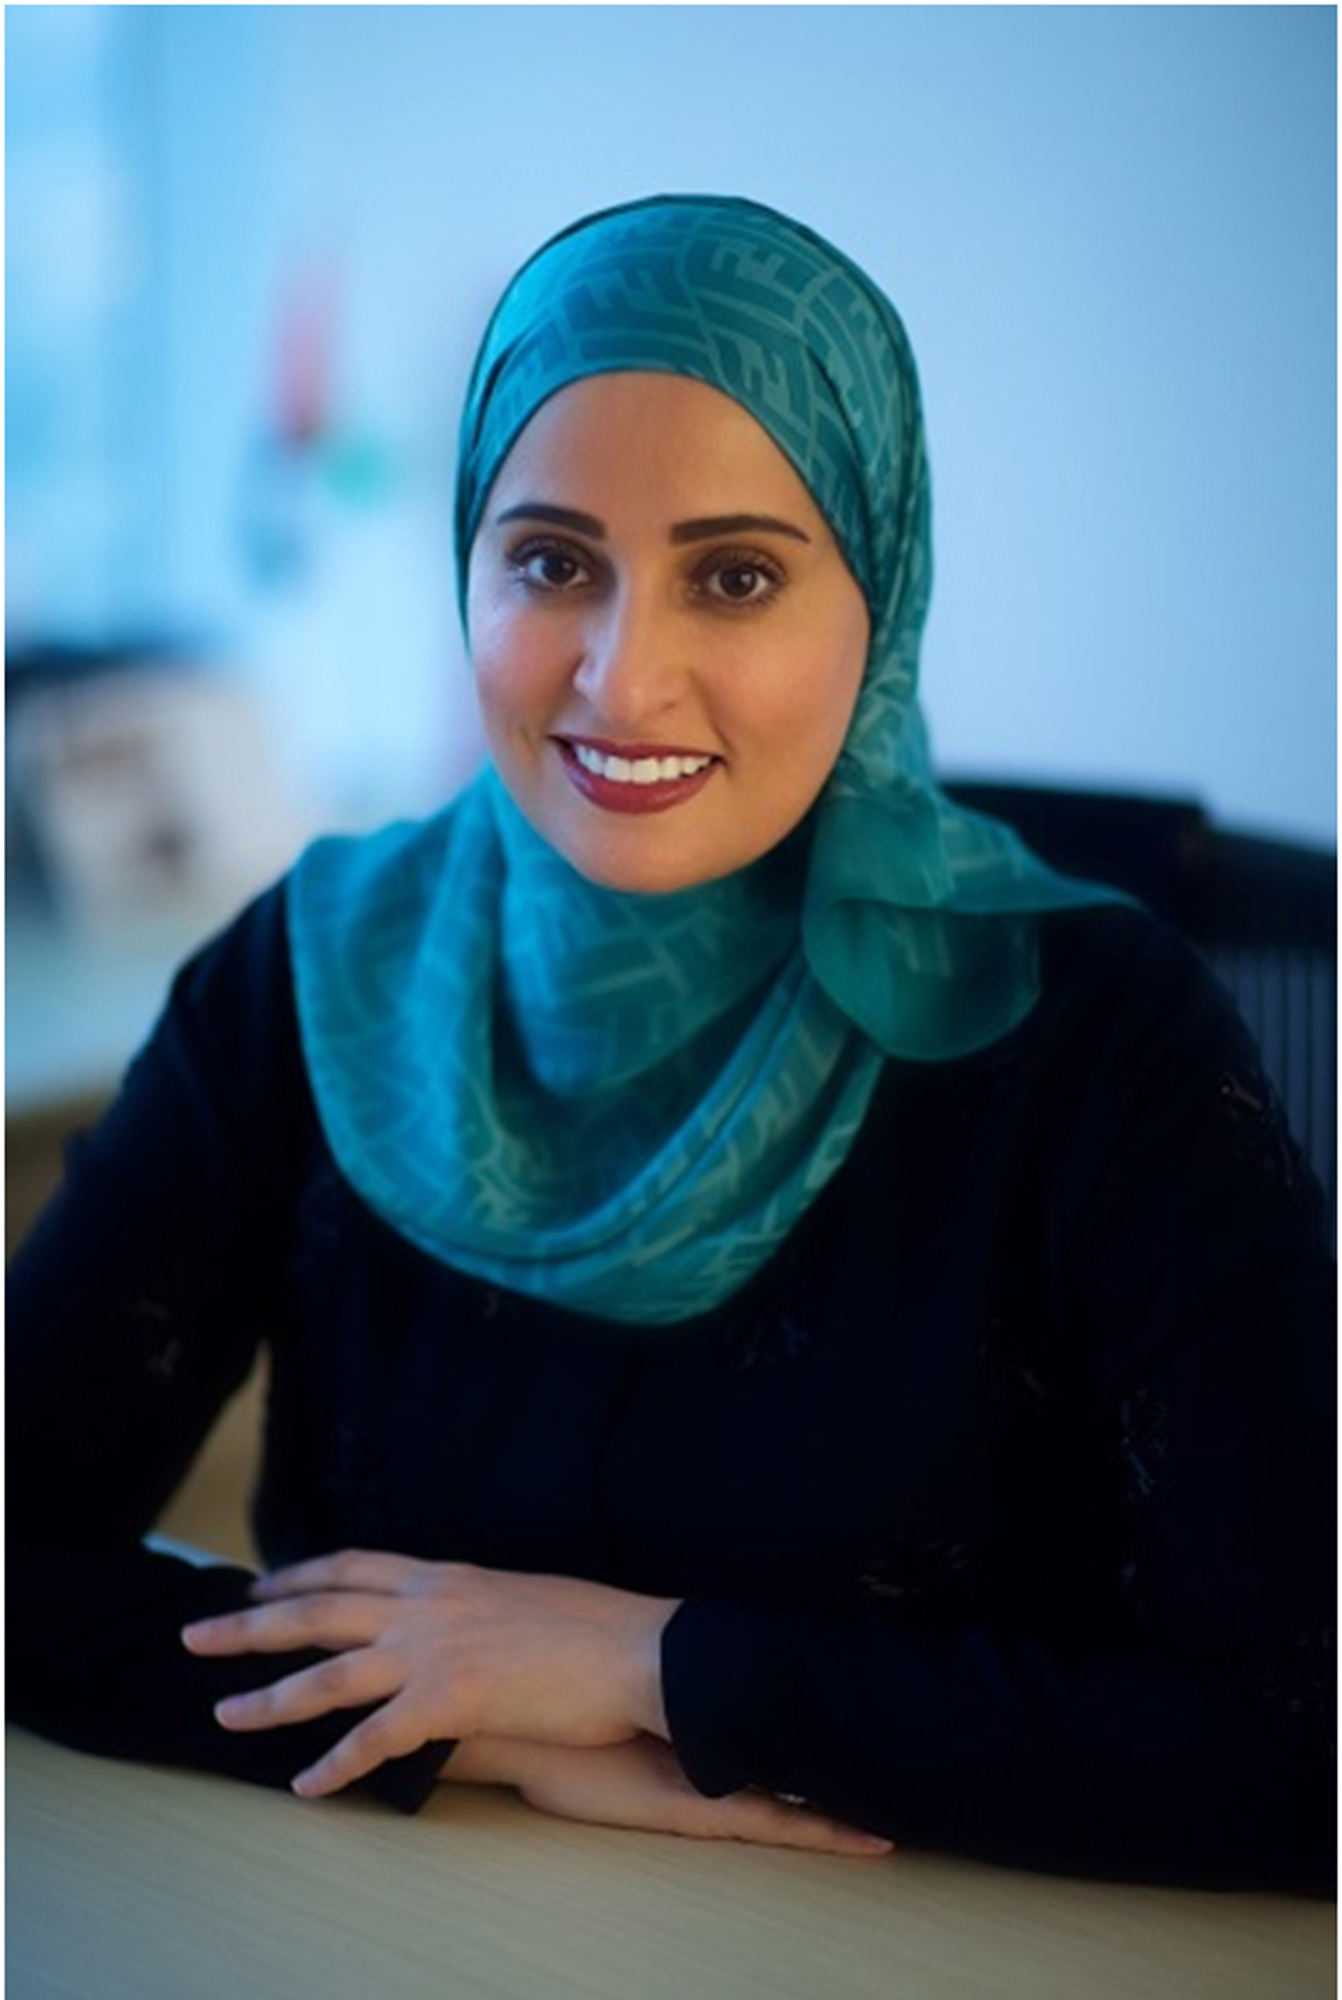 This undated image released by the Emirates News Agency, WAM, shows Ohood Al Roumi, the Minister of State for Happiness of the United Arab Emirates